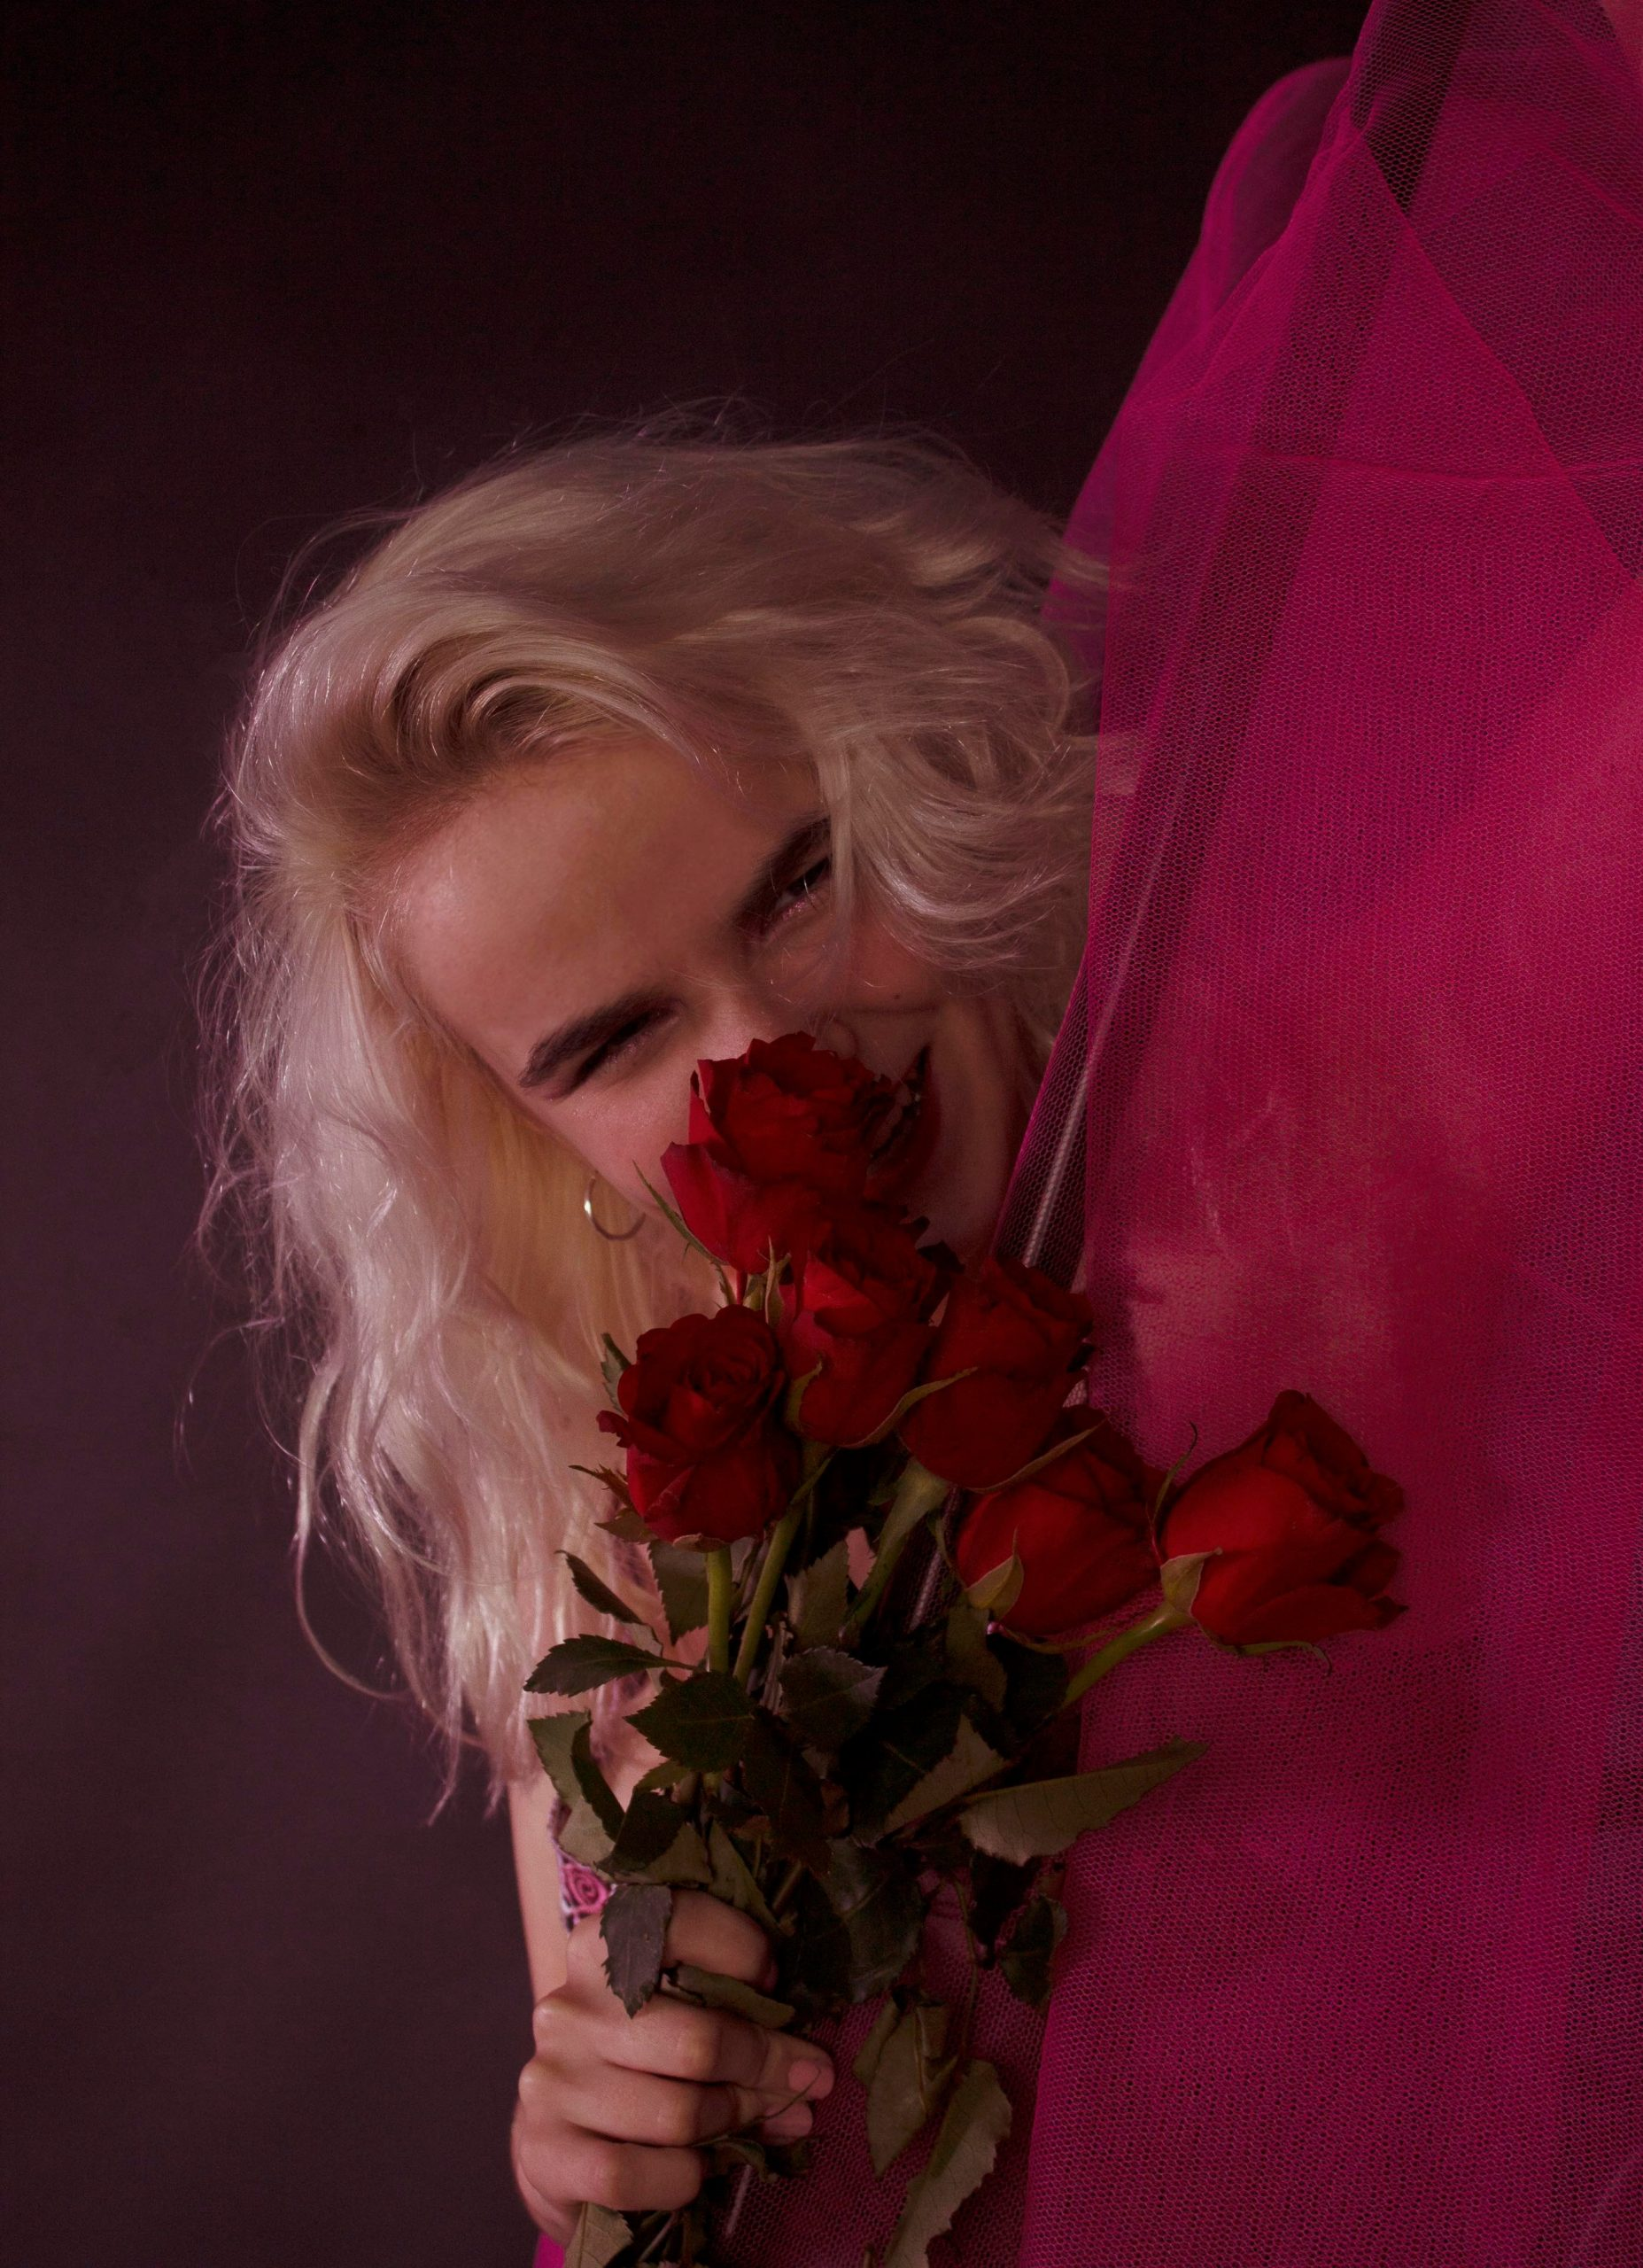 Profile image of Caitlin Macleod with bright blond hair and face partially obscured behind a bunch of red roses.